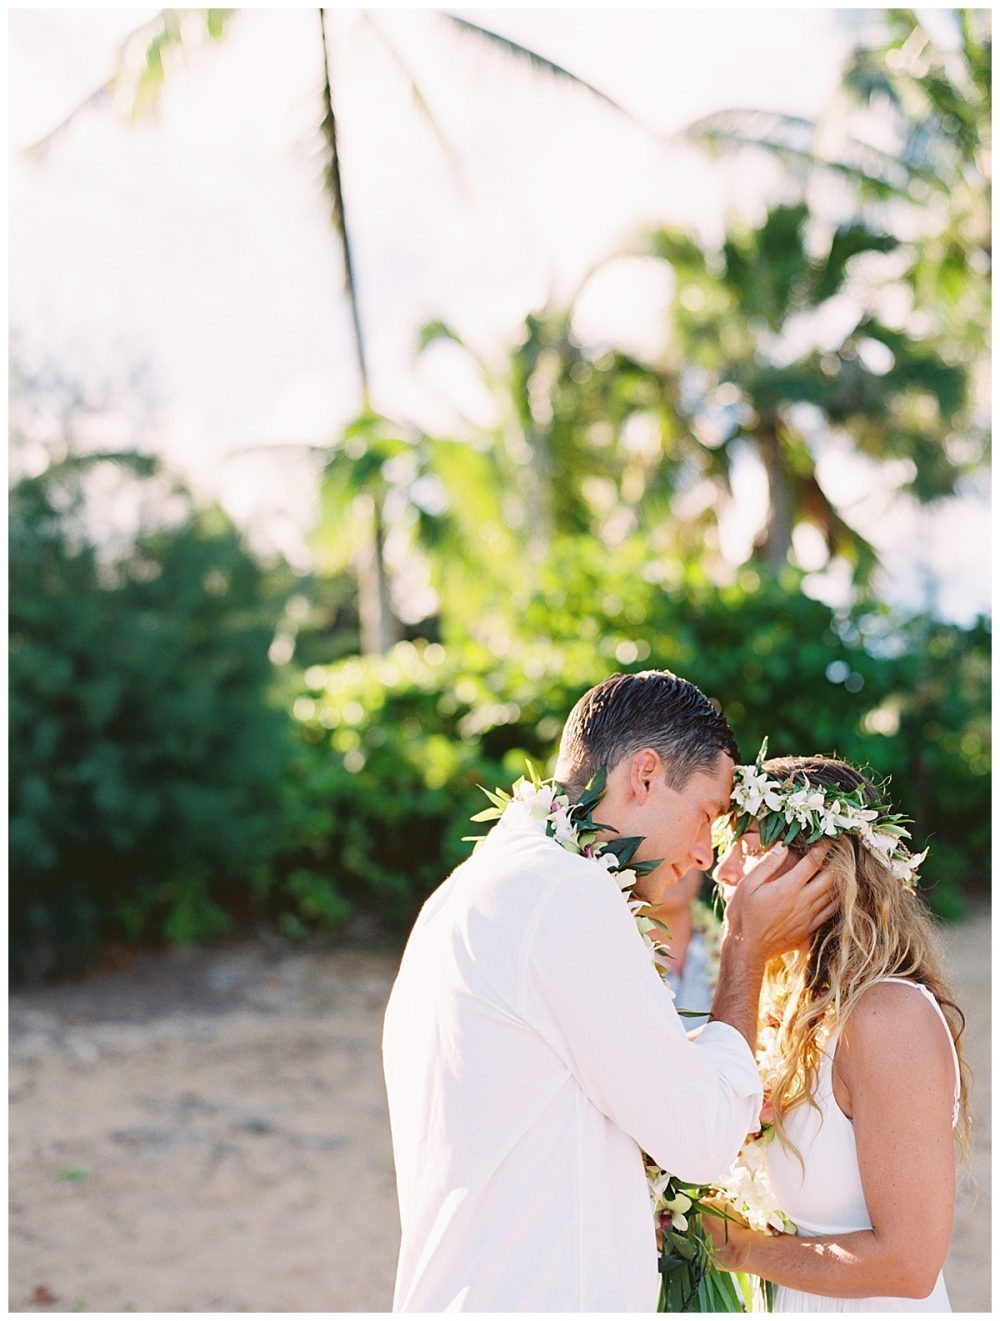 Kauai-Oahu-wedding-photography-by-kauai-wedding-family-photographer-mami-wyckoff-2017_0171